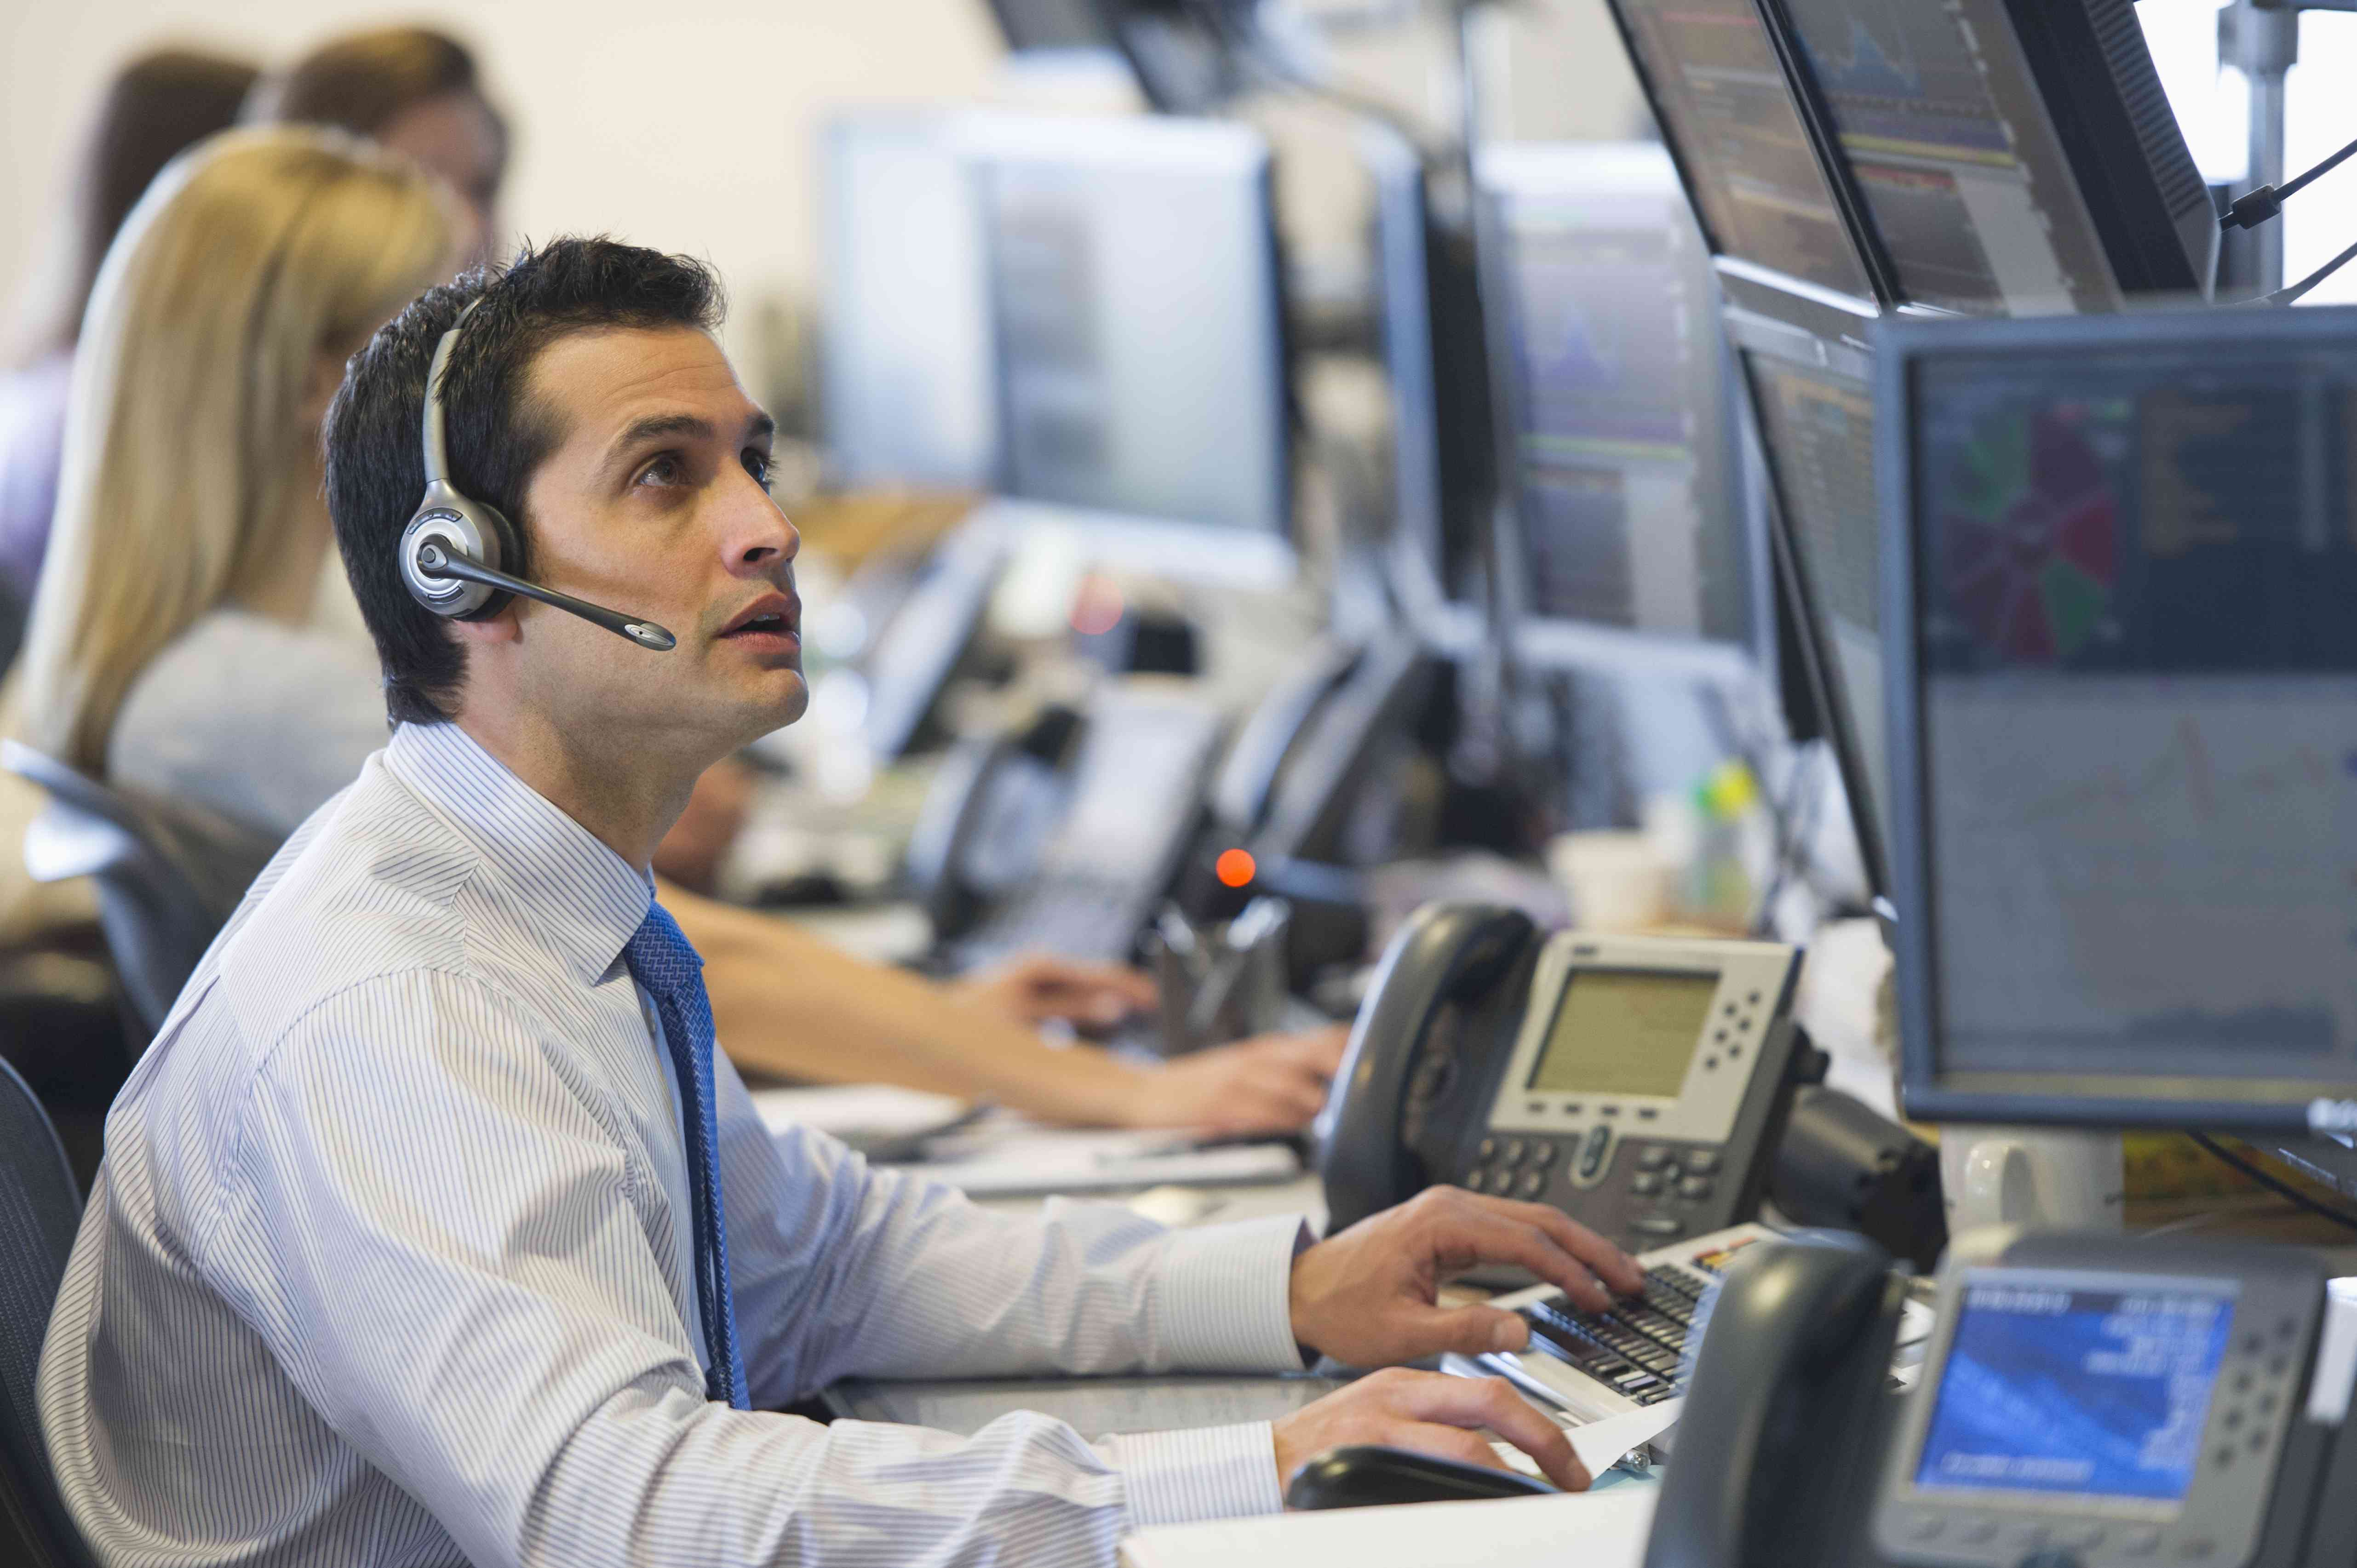 Traders at trading desks can work non-standard hours.